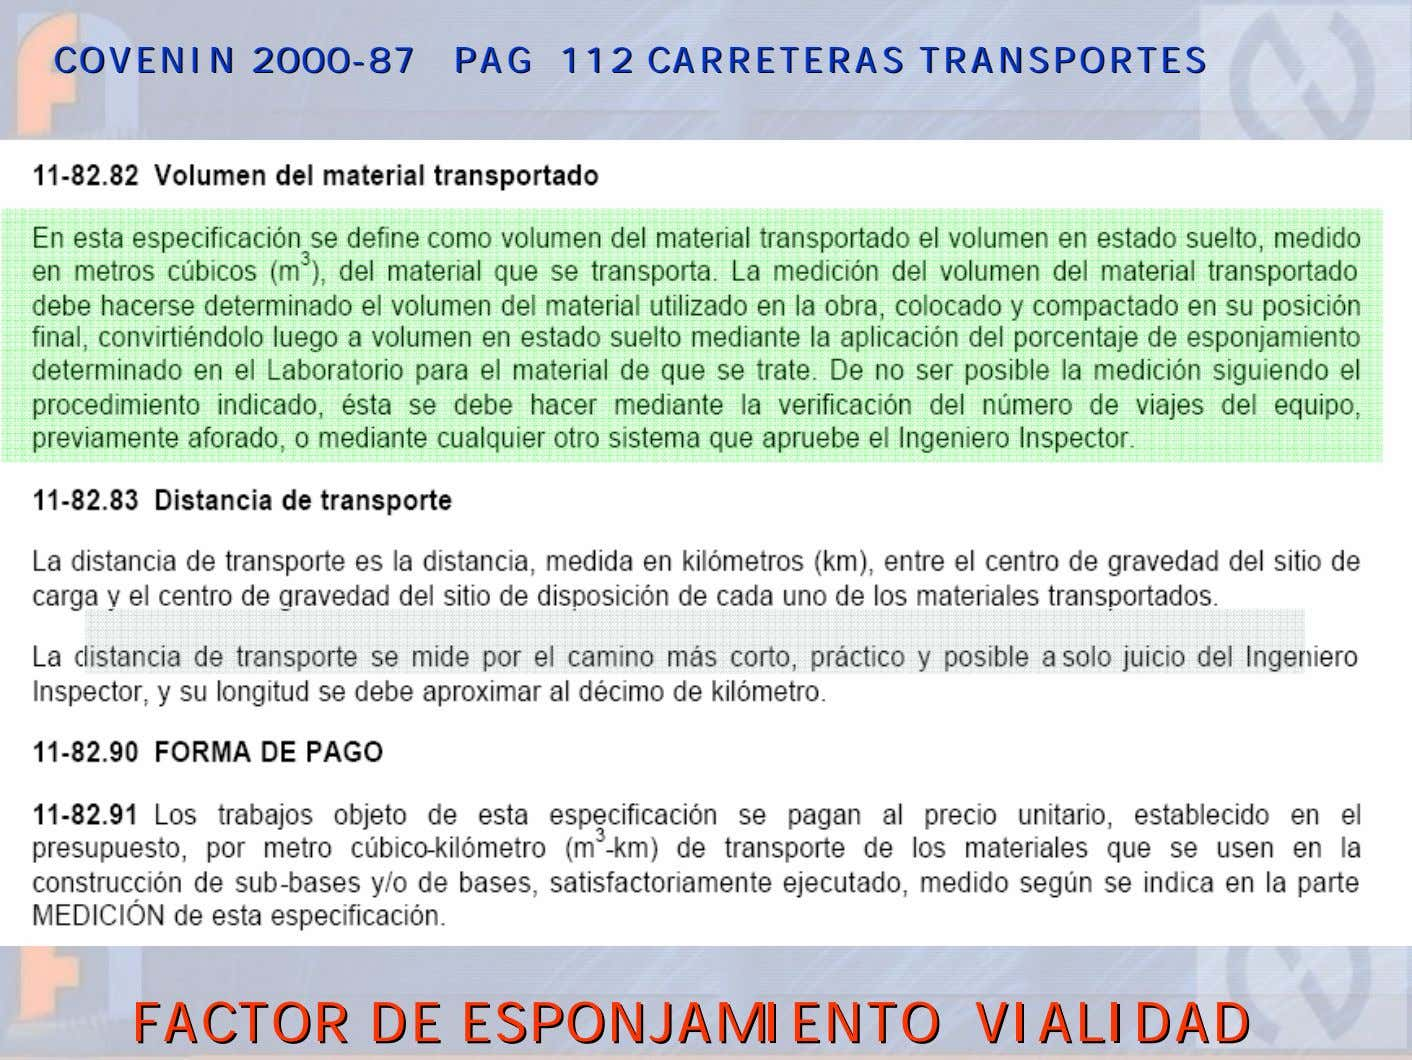 COVENINCOVENIN 20002000--8787 PAGPAG 112112 CARRETERASCARRETERAS TRANSPORTESTRANSPORTES FACTORFACTOR DEDE